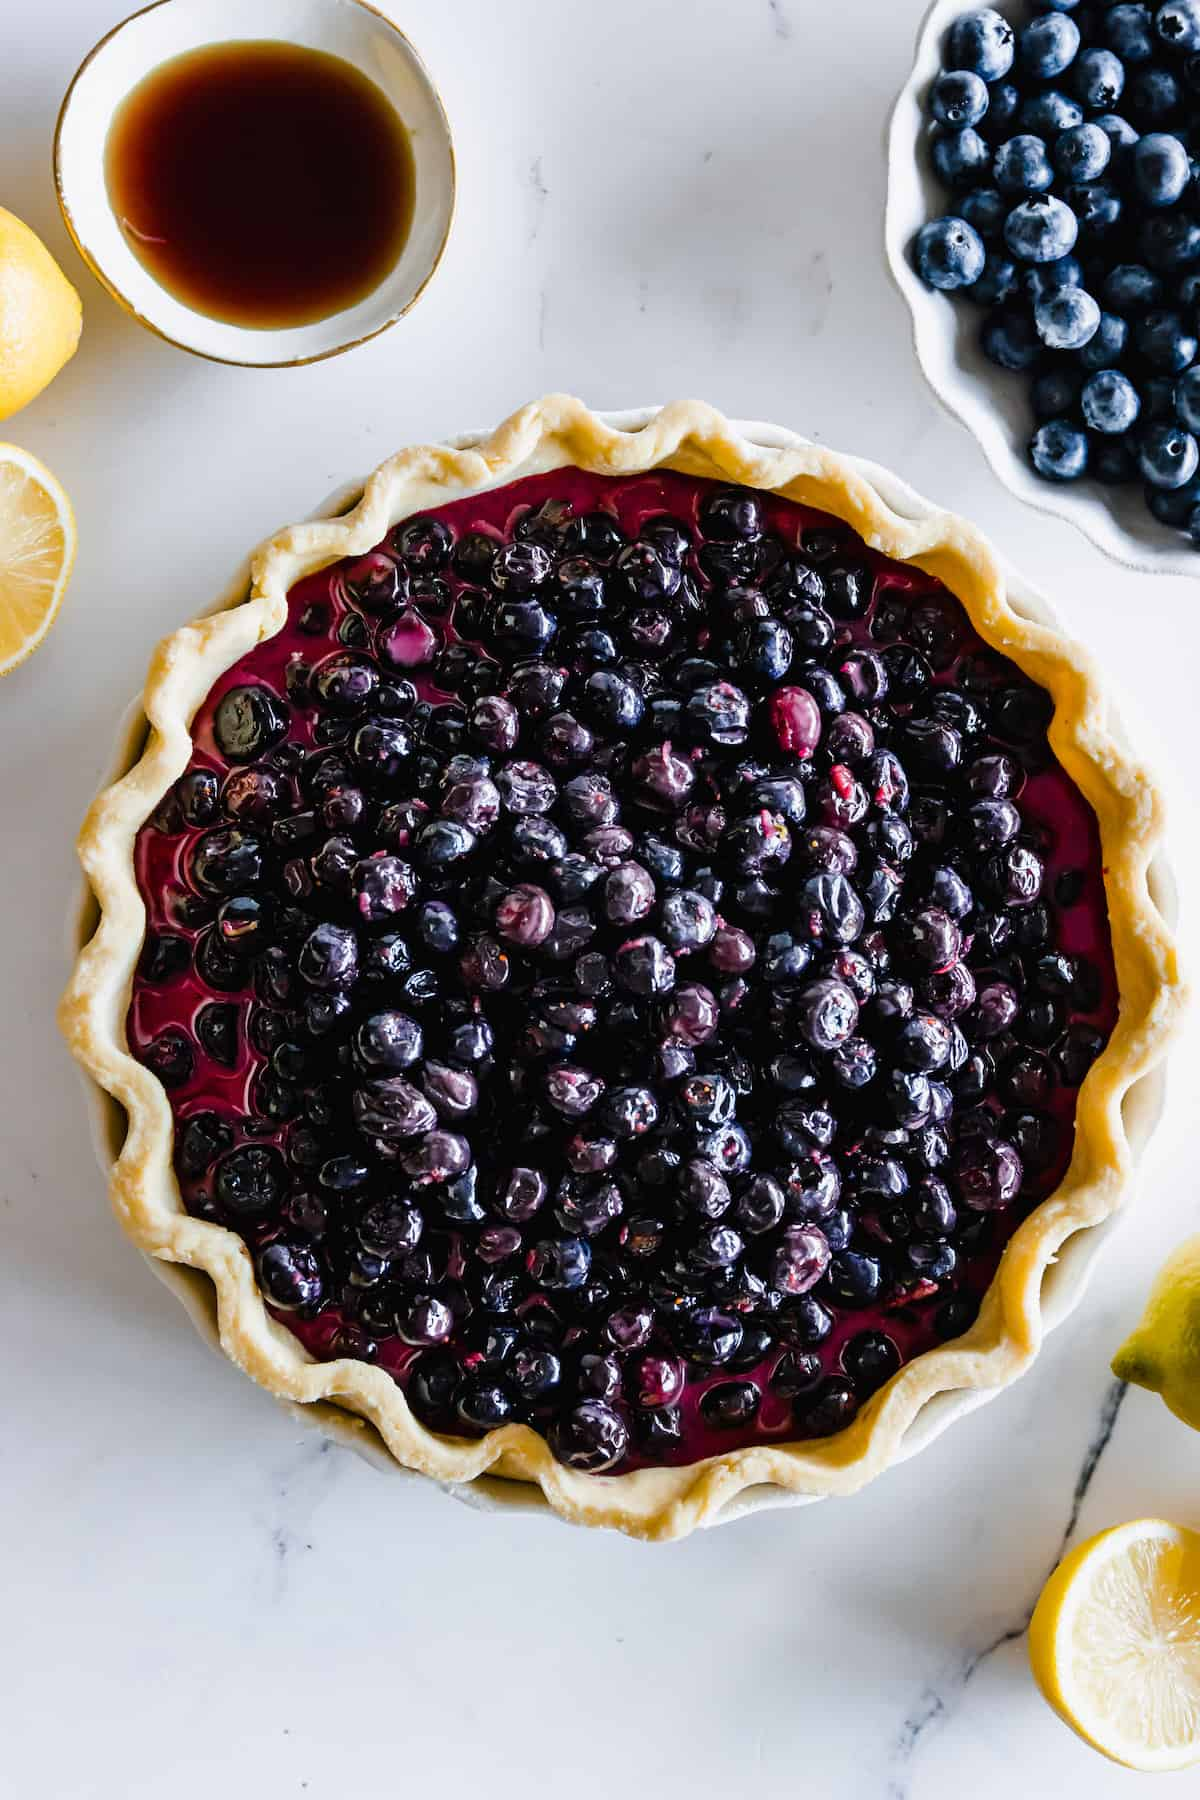 A Pre-Baked Gluten-Free Pie Crust Filled with Blueberry Filling